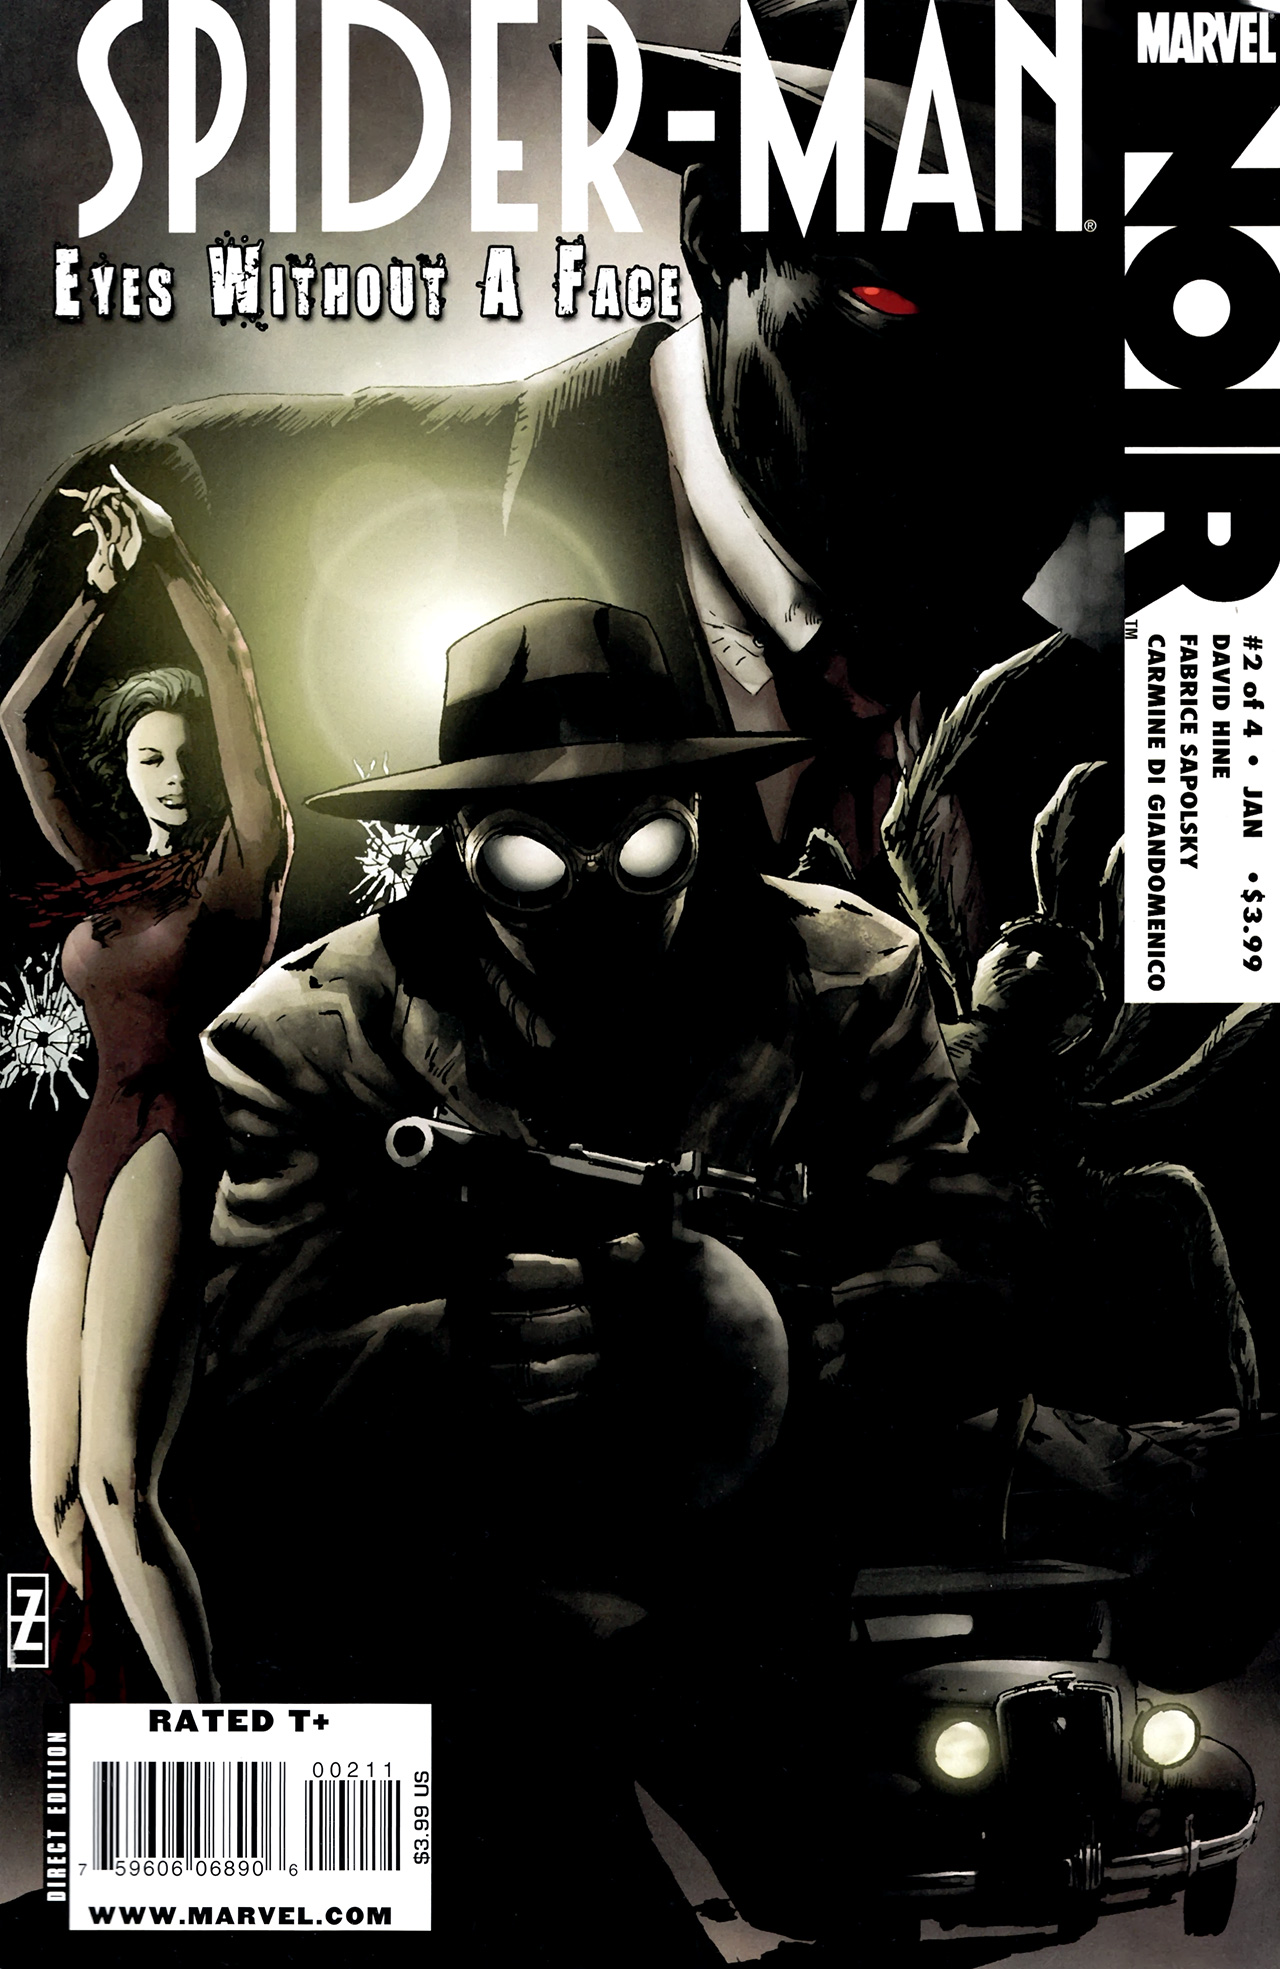 Spider man noir eyes without a face vol 1 2 marvel - Spiderman noir 3 ...